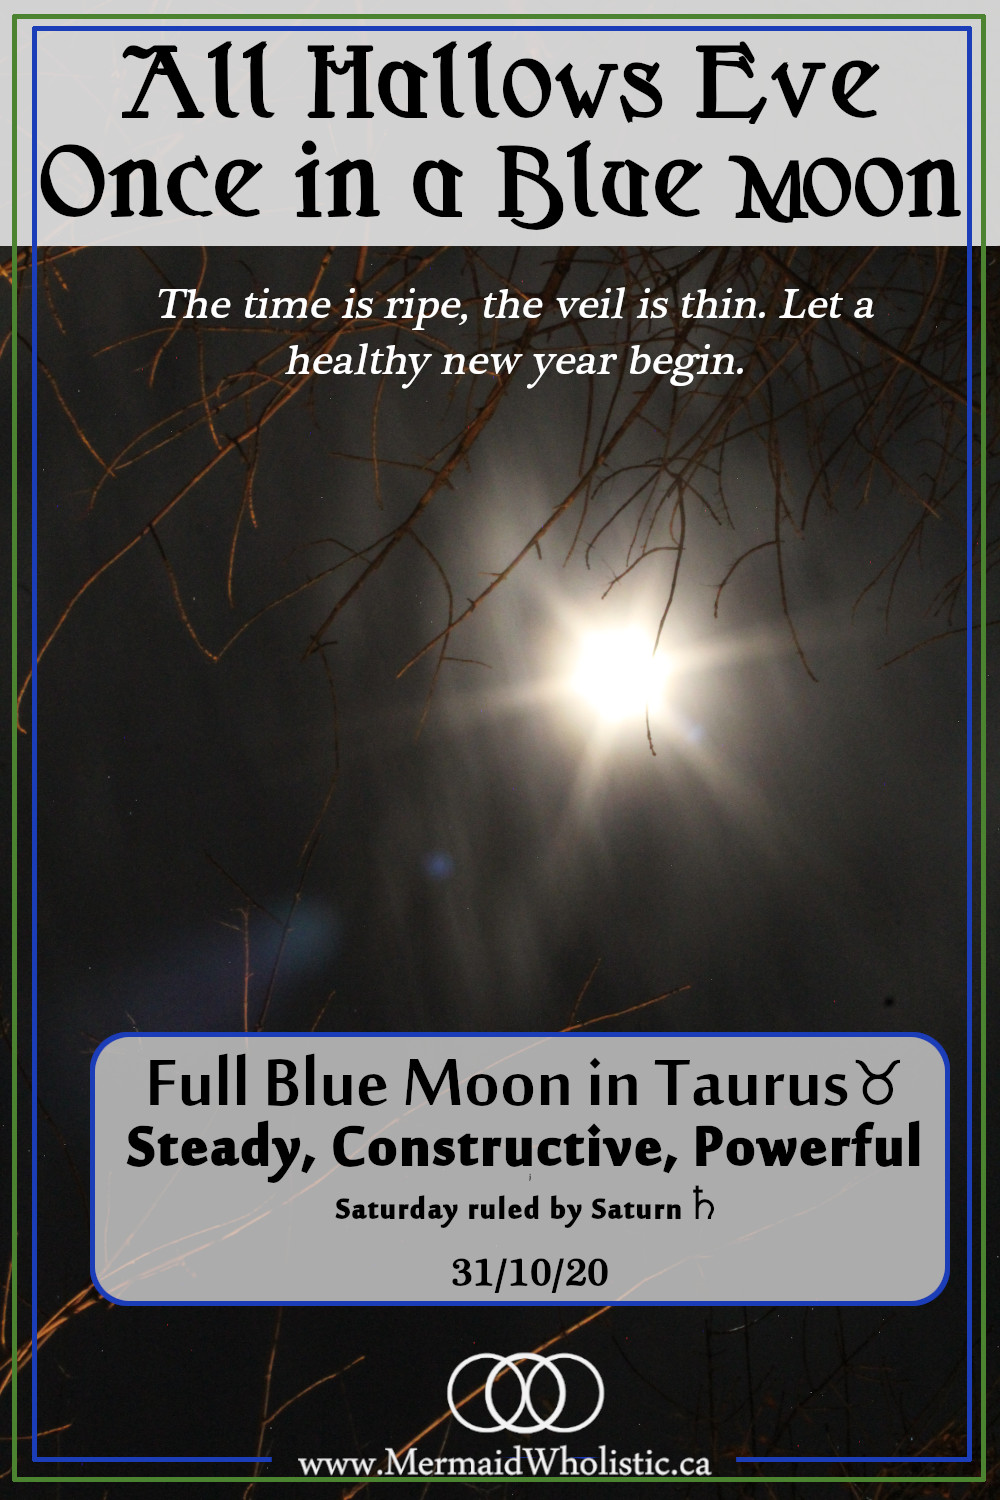 Rare blue moon on October 31st 2020